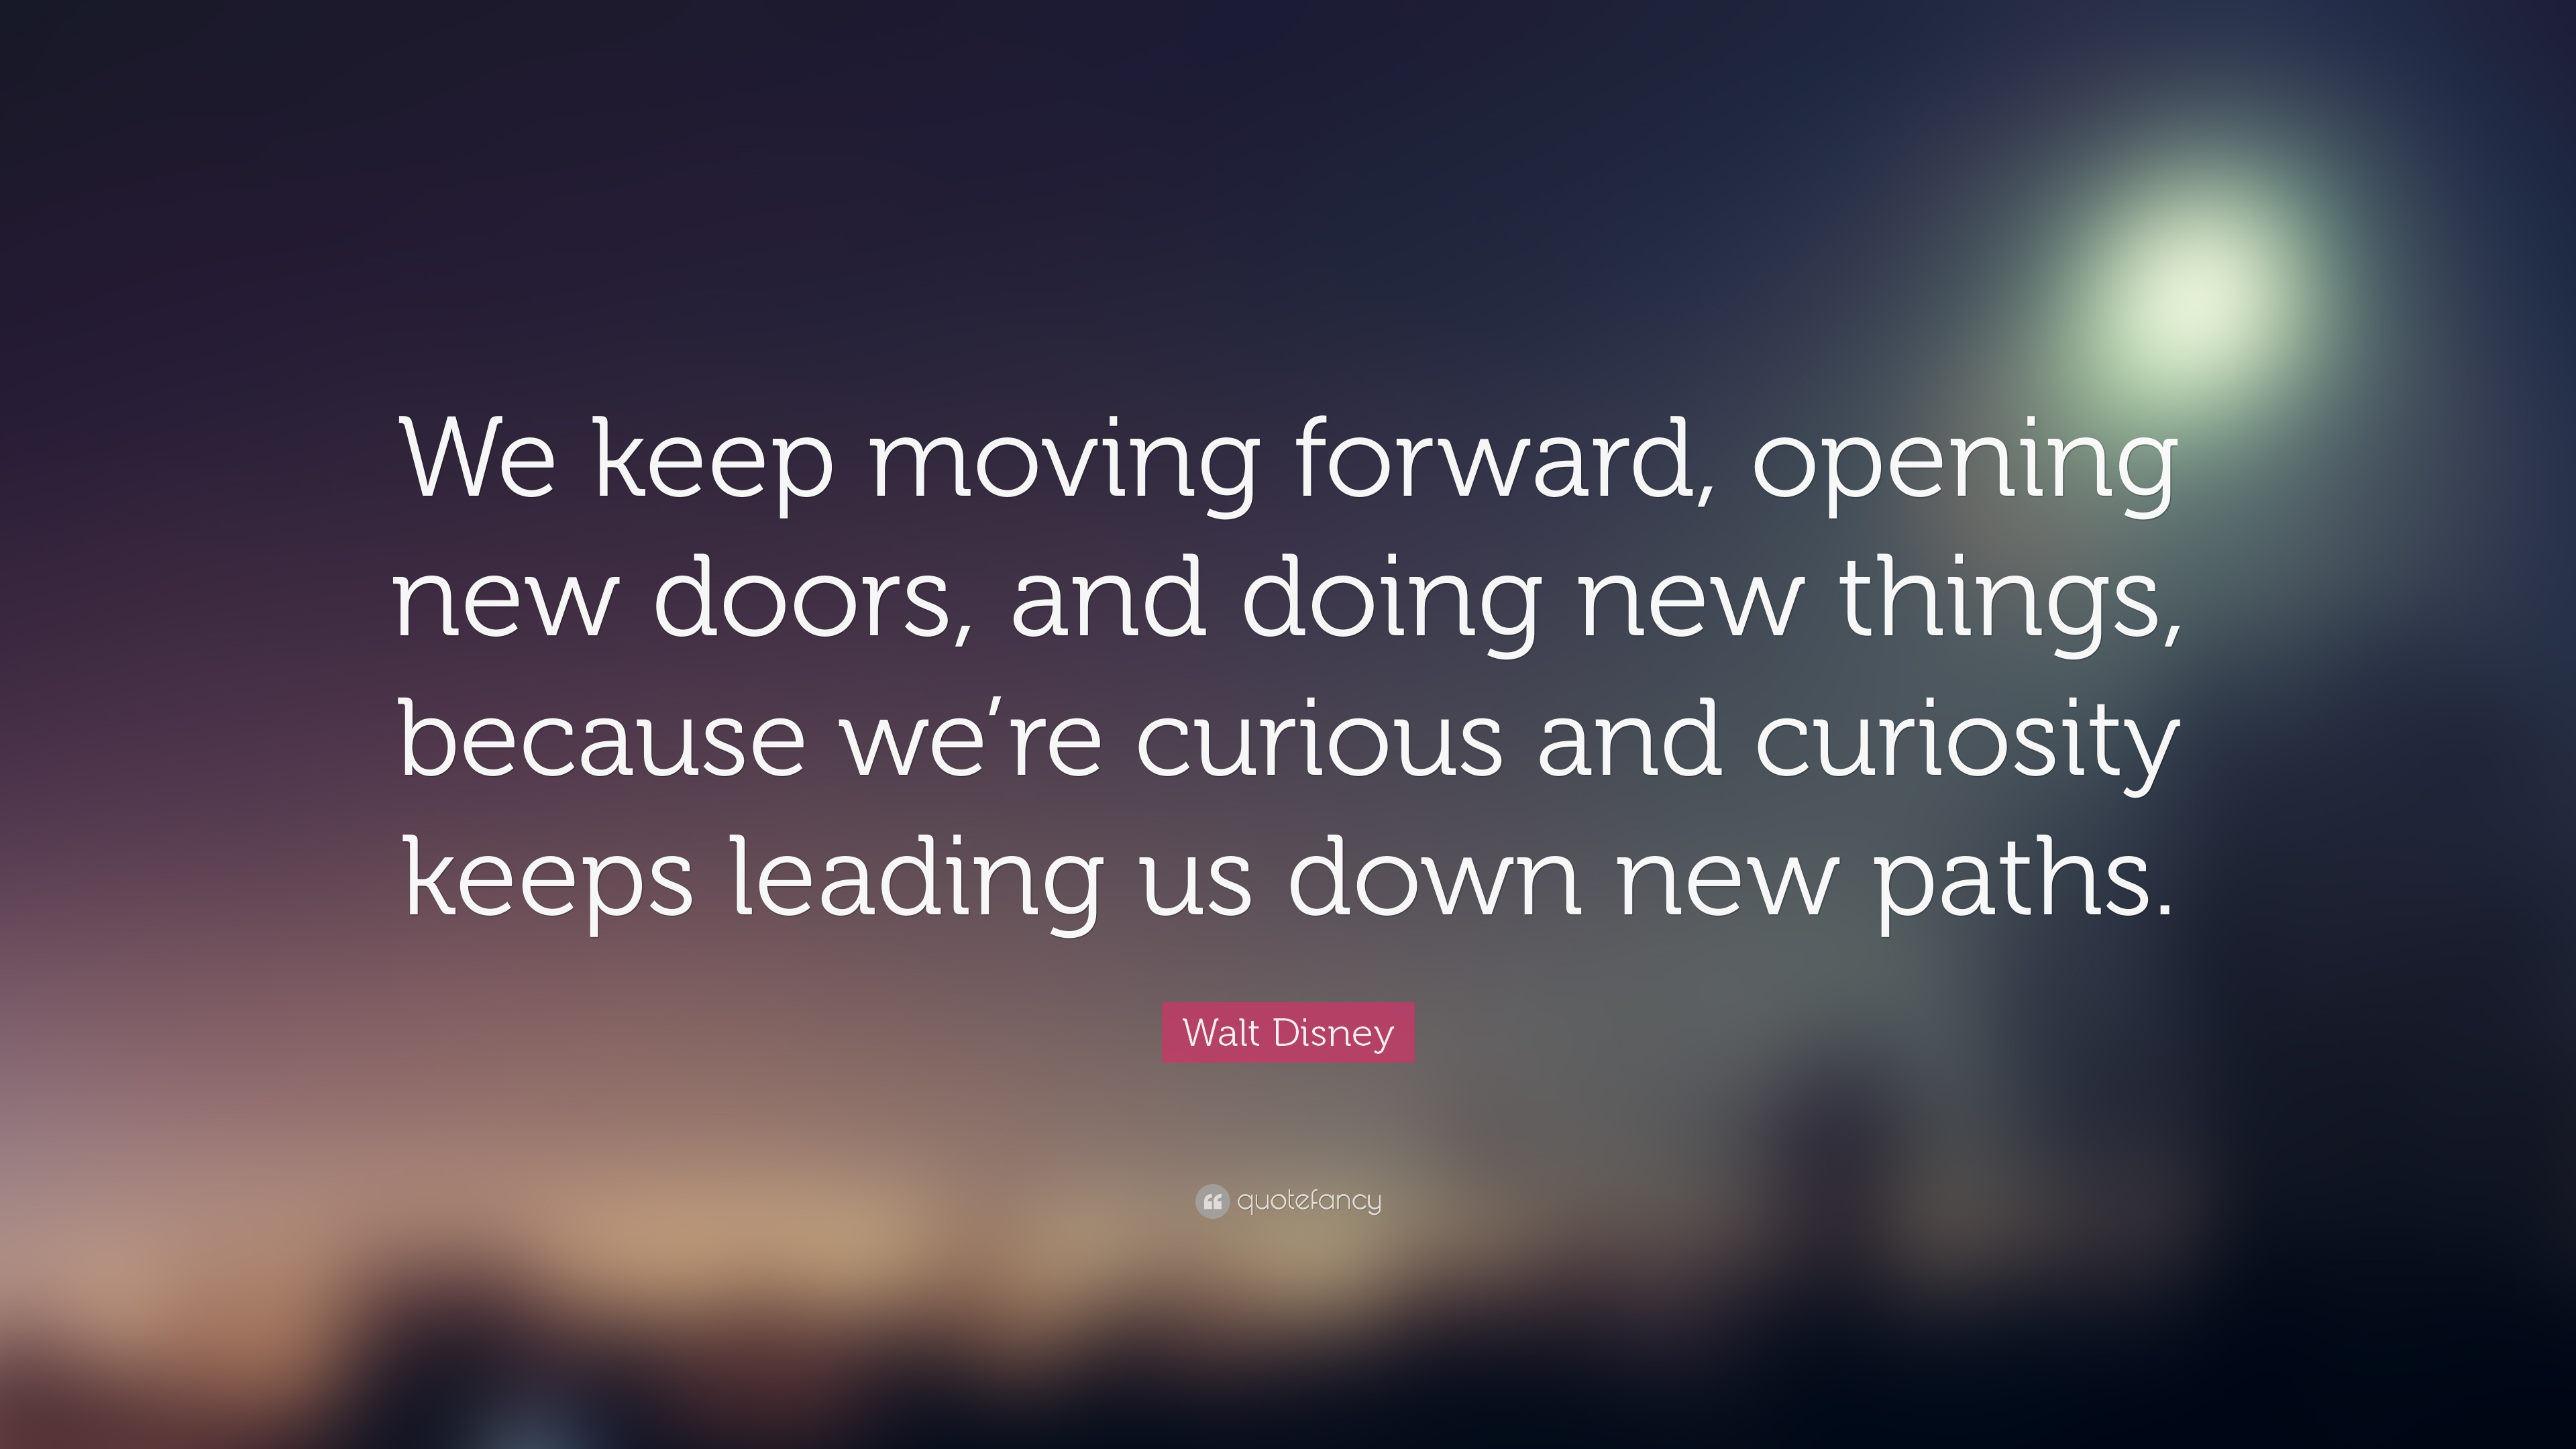 walt disney quotes keep moving forward - photo #13